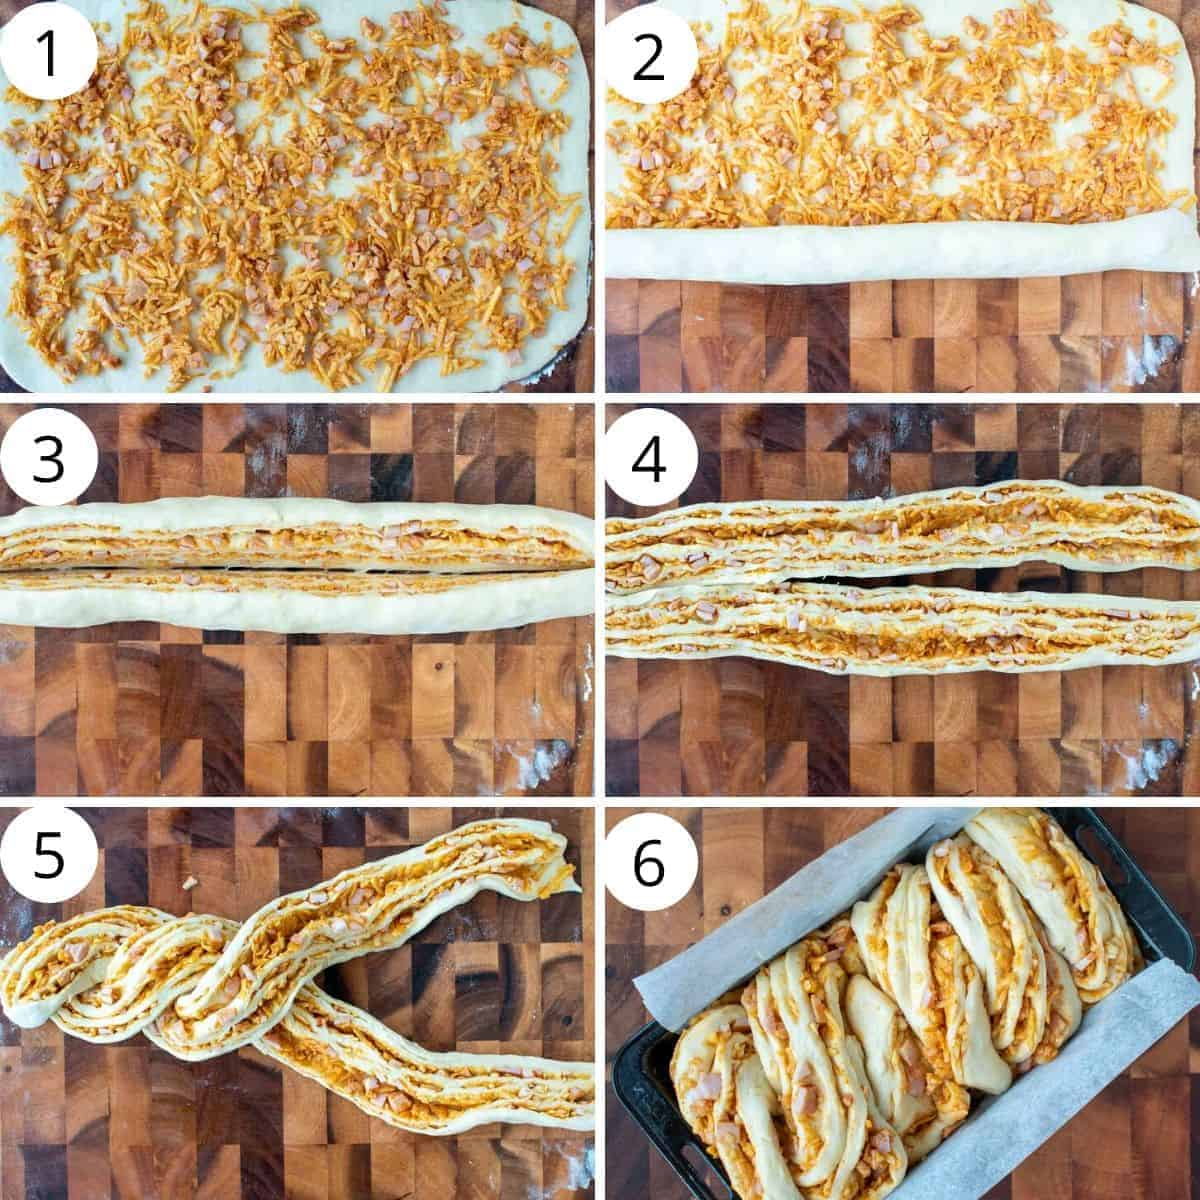 6 images numbered 1 to 6. Image 1 - dough with cheese and bacon sprinkled over. Image 2 - same dough half rolled up along long edge. Image 3 - rolled and filled dough rolled into a log and cut in half. Image 4 - two halves of rolled and filled dough. Image 5 - two halves of rolled and filled dough twisted together. Image 6 - twisted filled bread dough in black pan